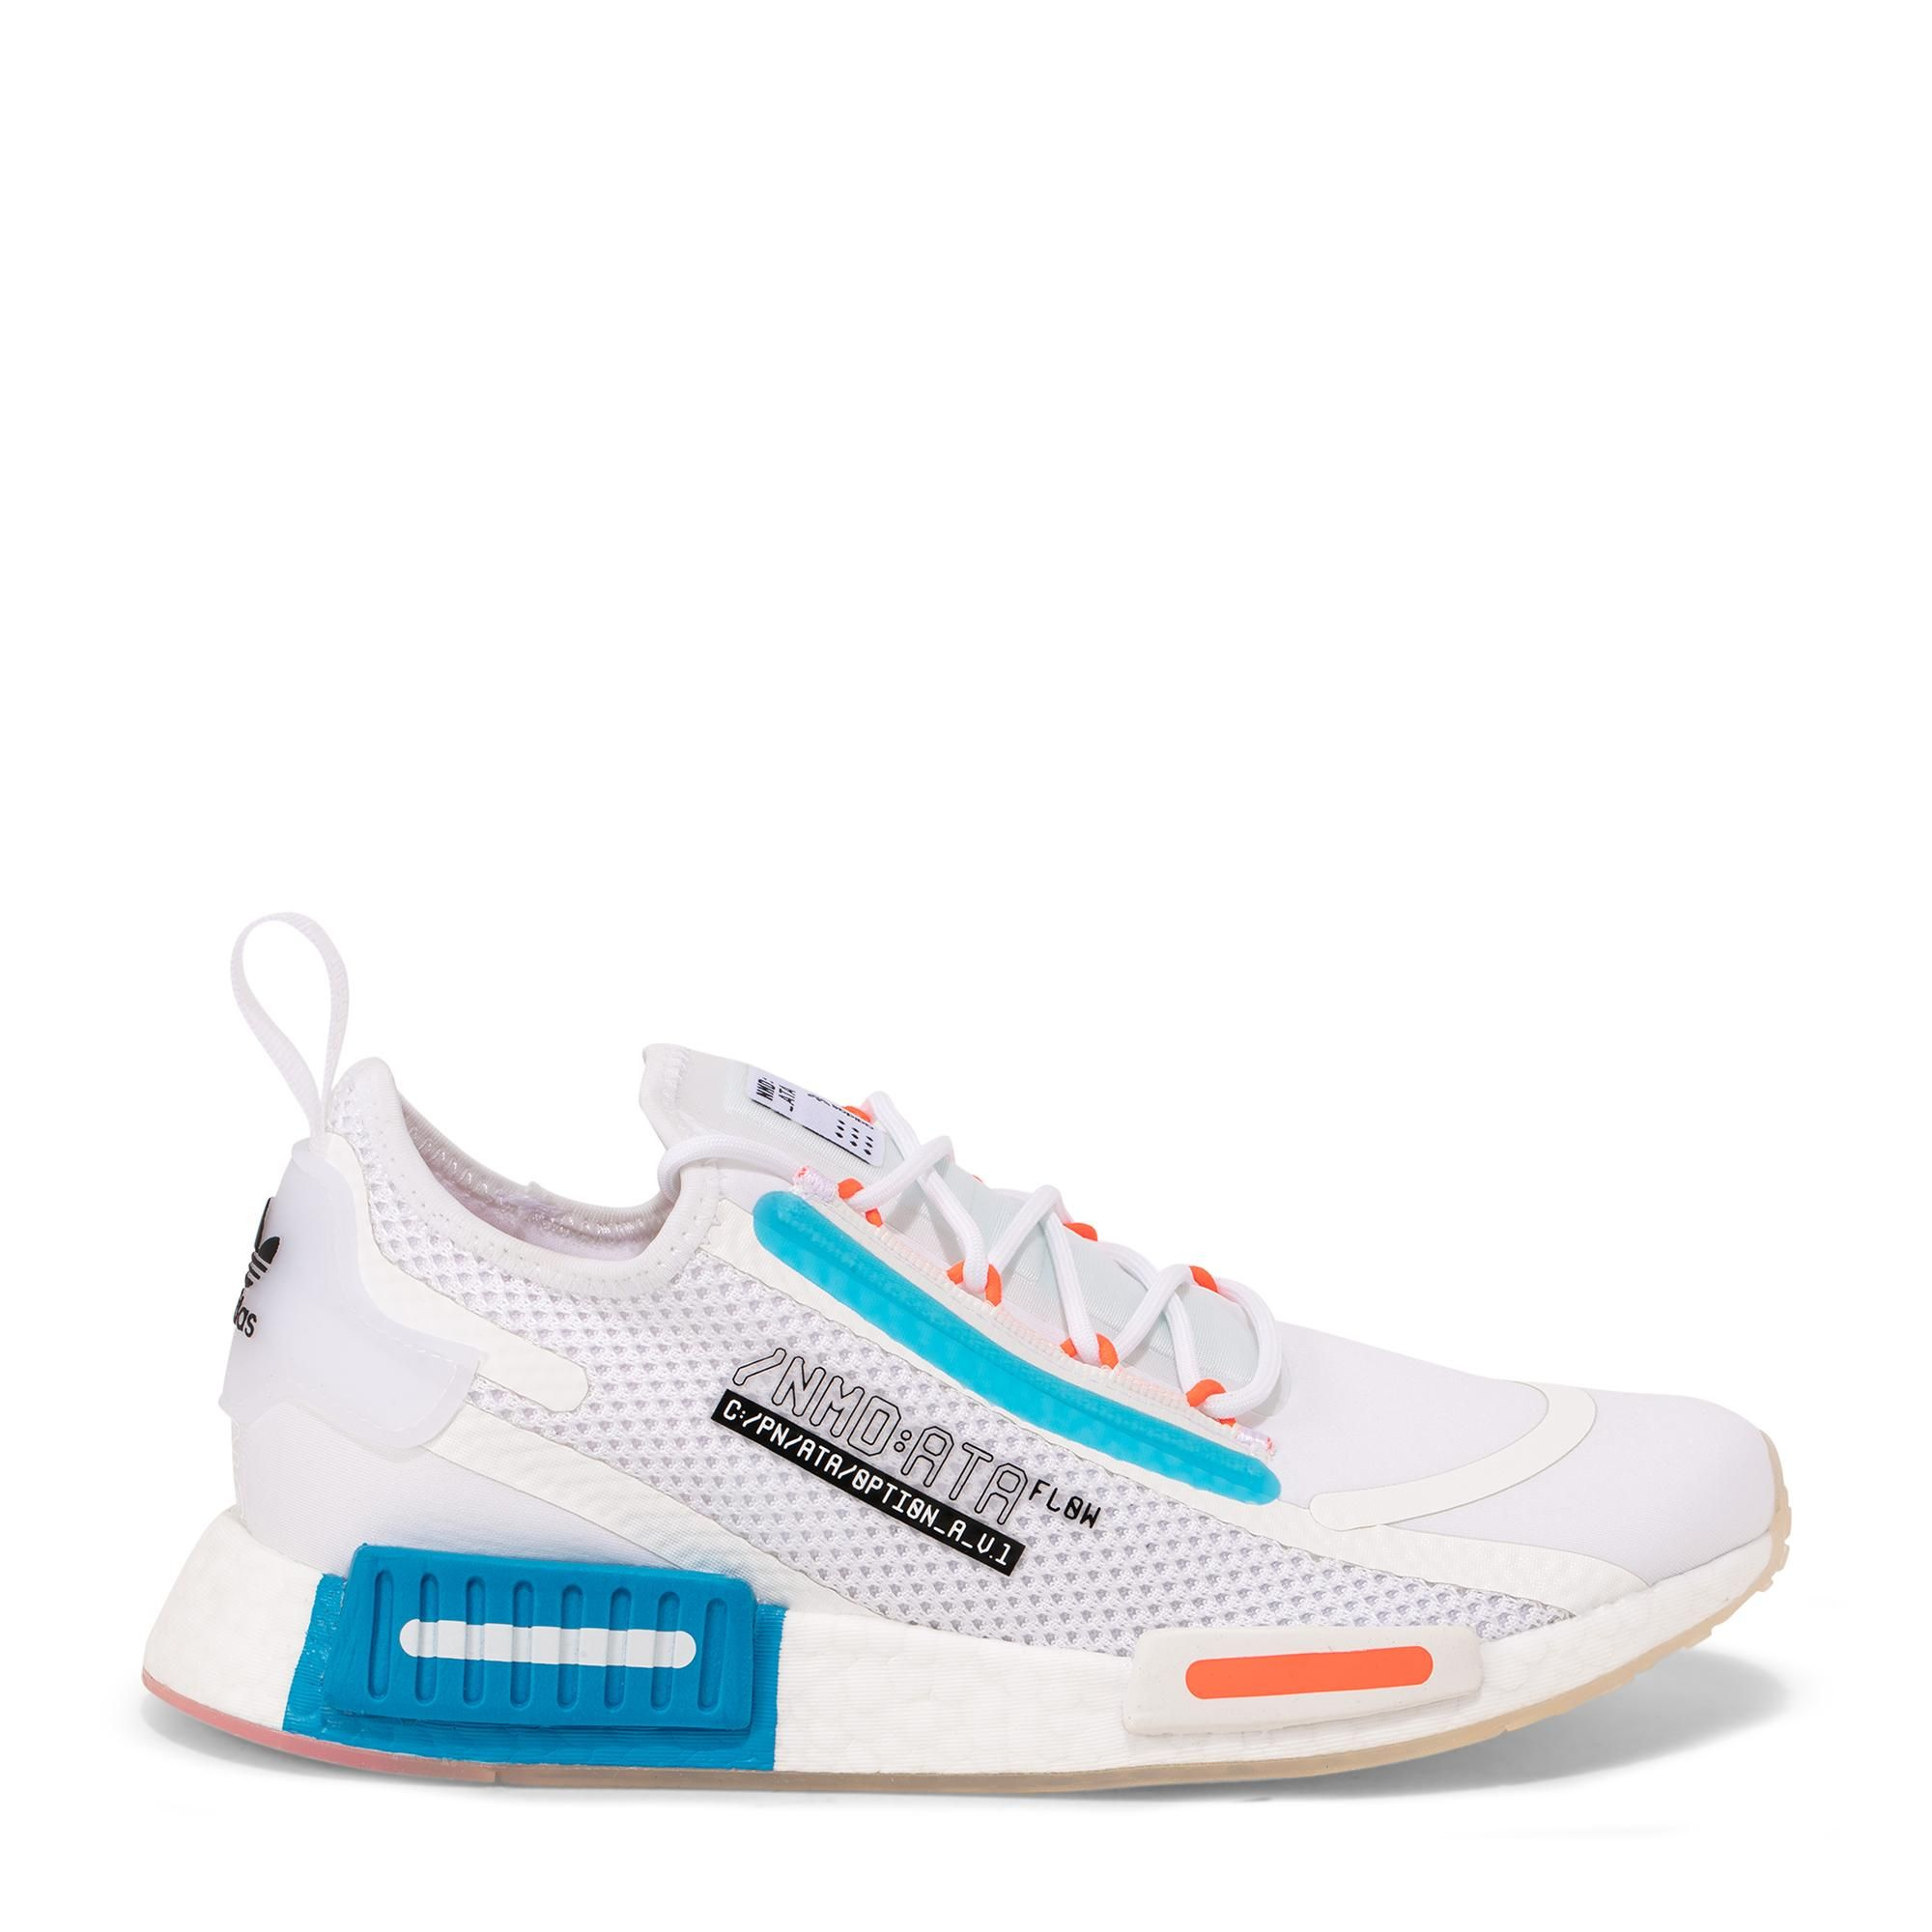 NMD_R1 Spectoo sneakers